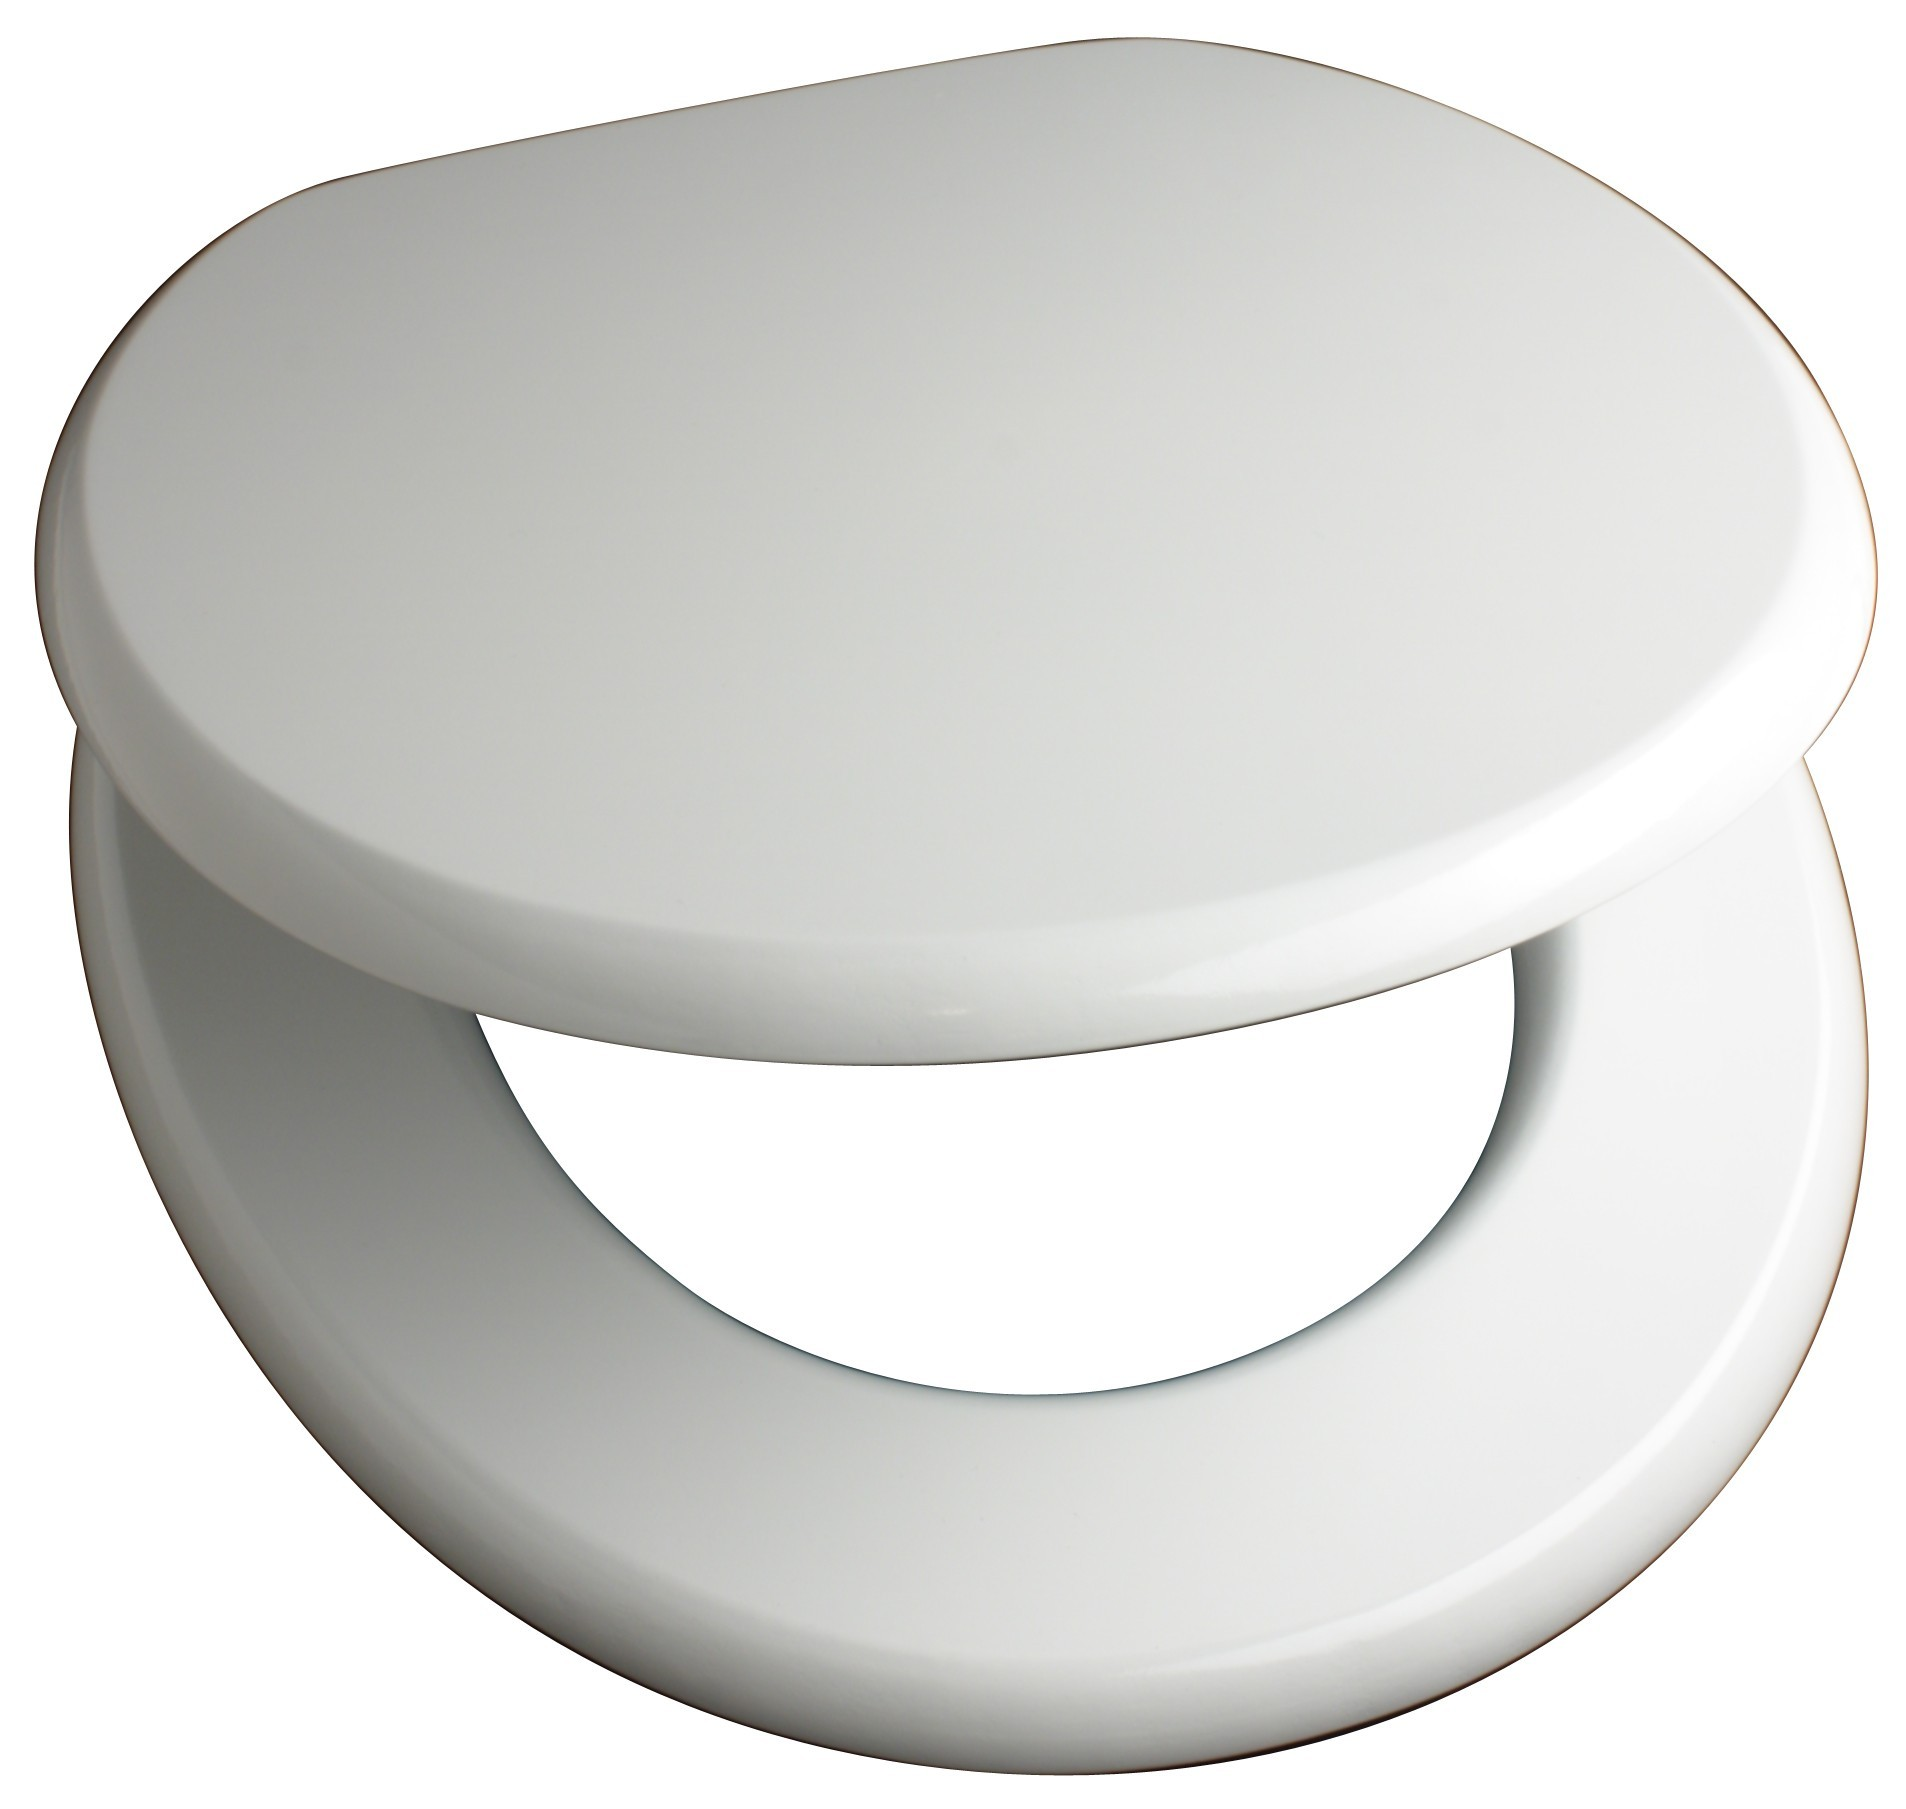 Toilet Seat & Cover